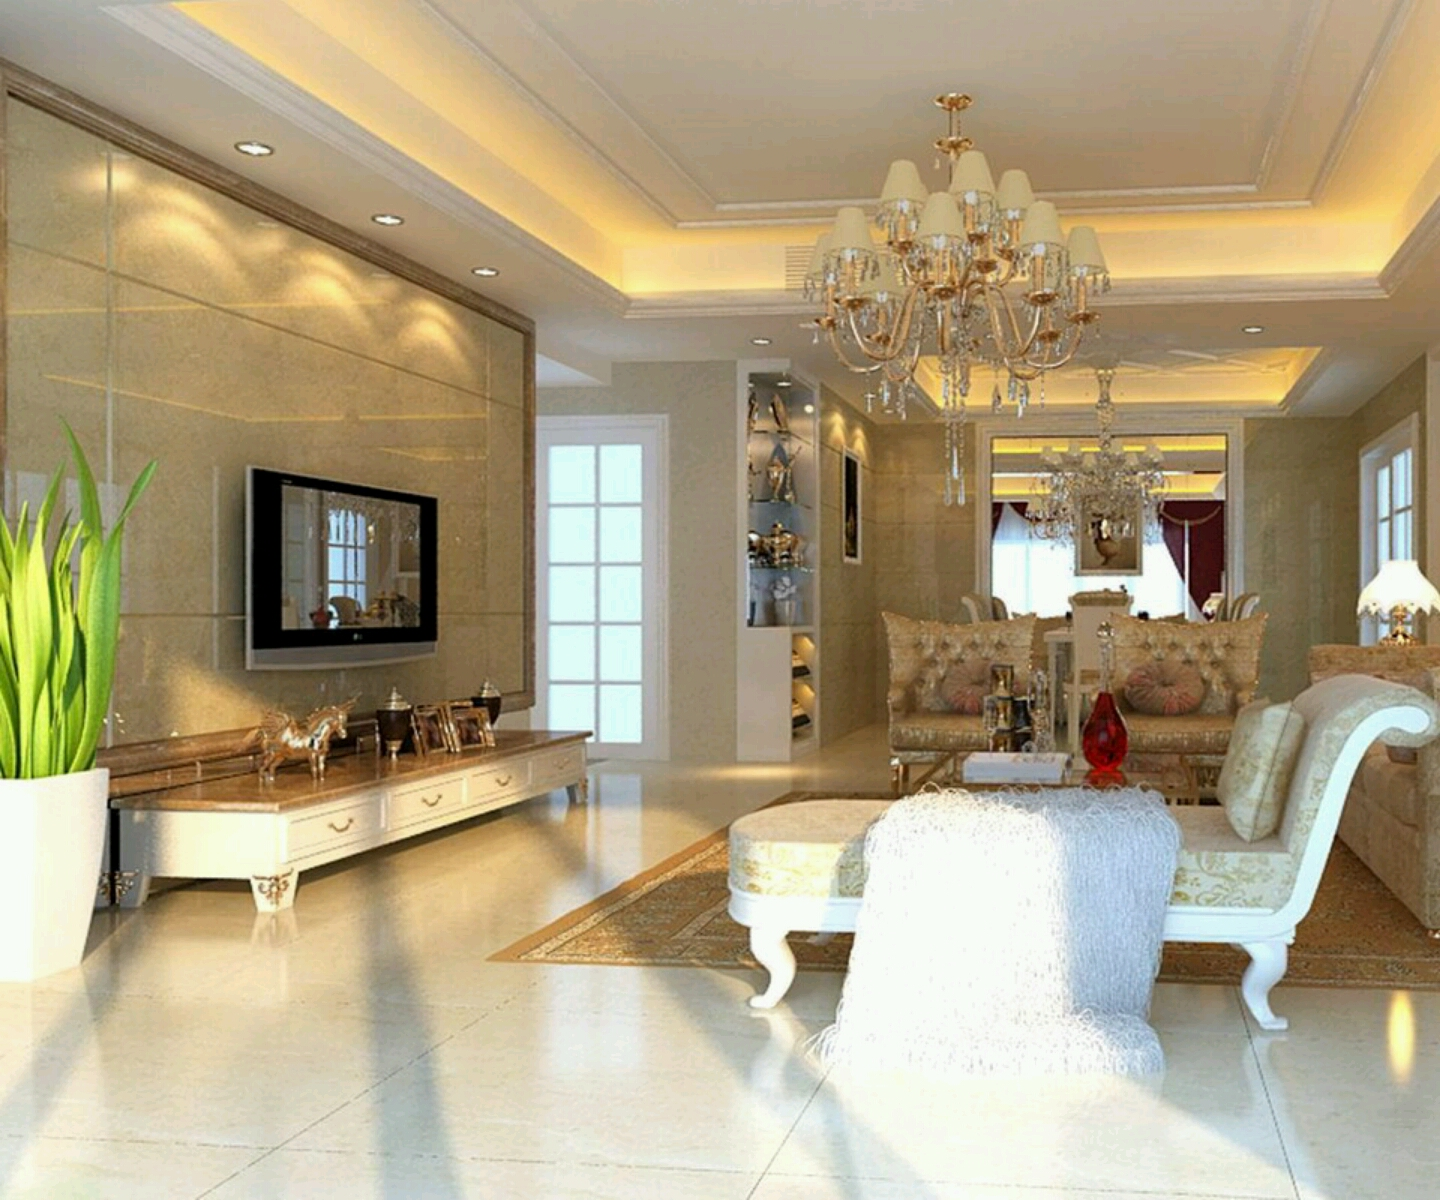 Home Internal Design: Home Decor 2012: Luxury Homes Interior Decoration Living